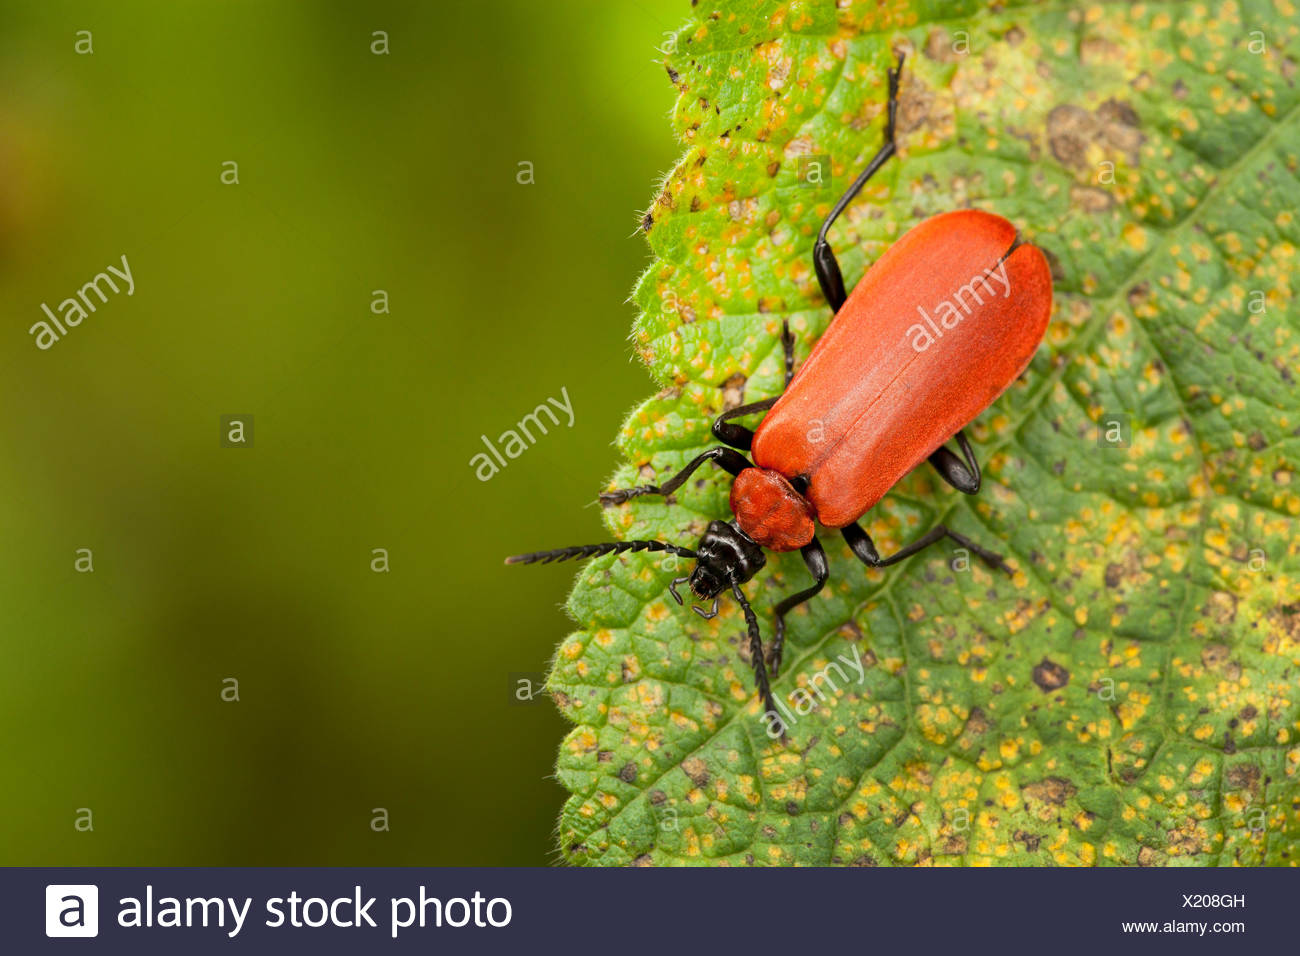 Scarlet fire beetle, Cardinal beetle (Pyrochroa coccinea), sitting on a leaf, Germany, Rhineland-Palatinate - Stock Image